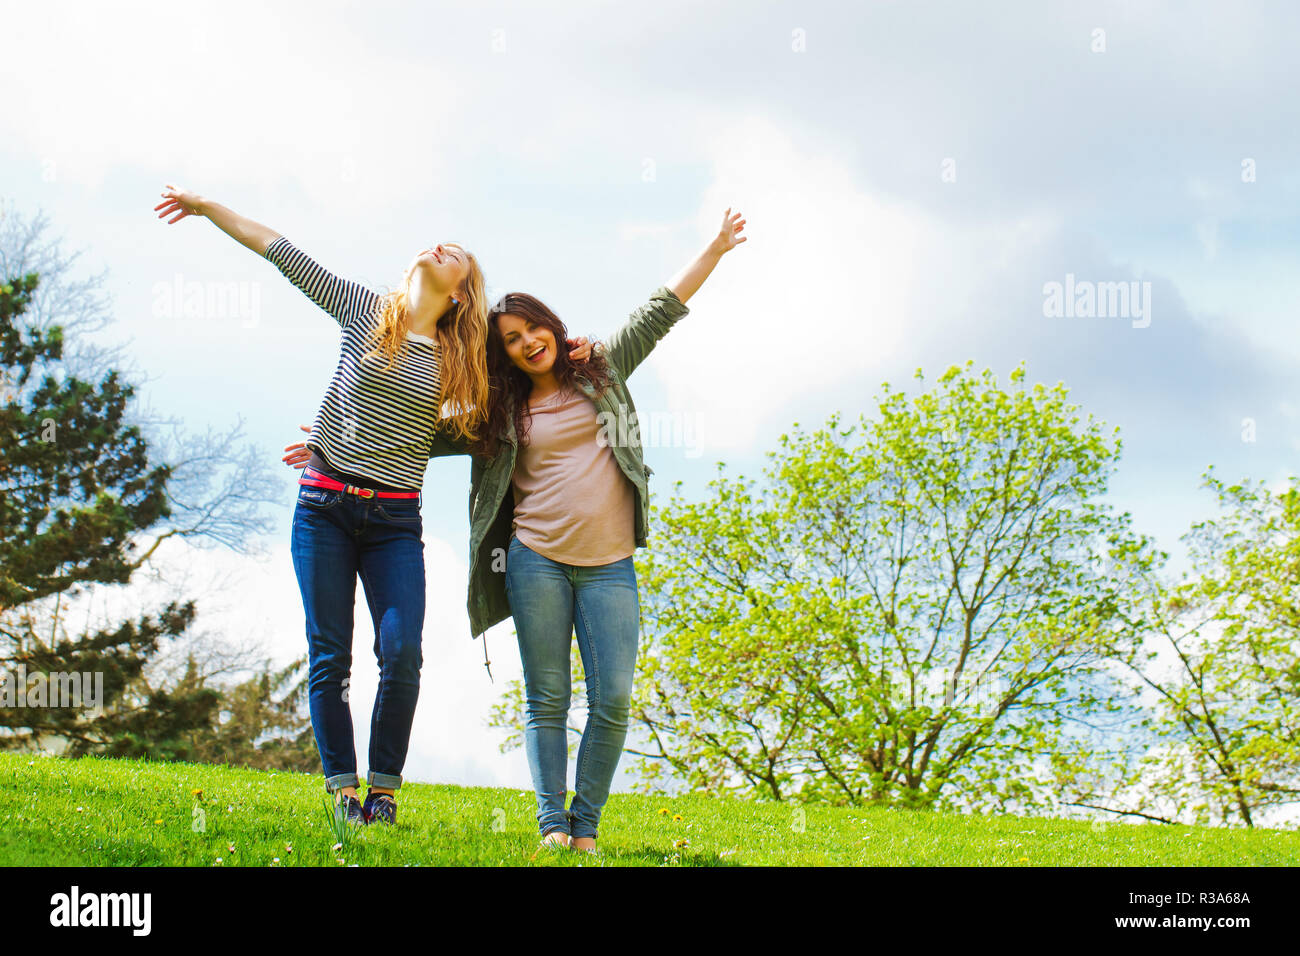 Les amies s'amuser dans la nature Photo Stock